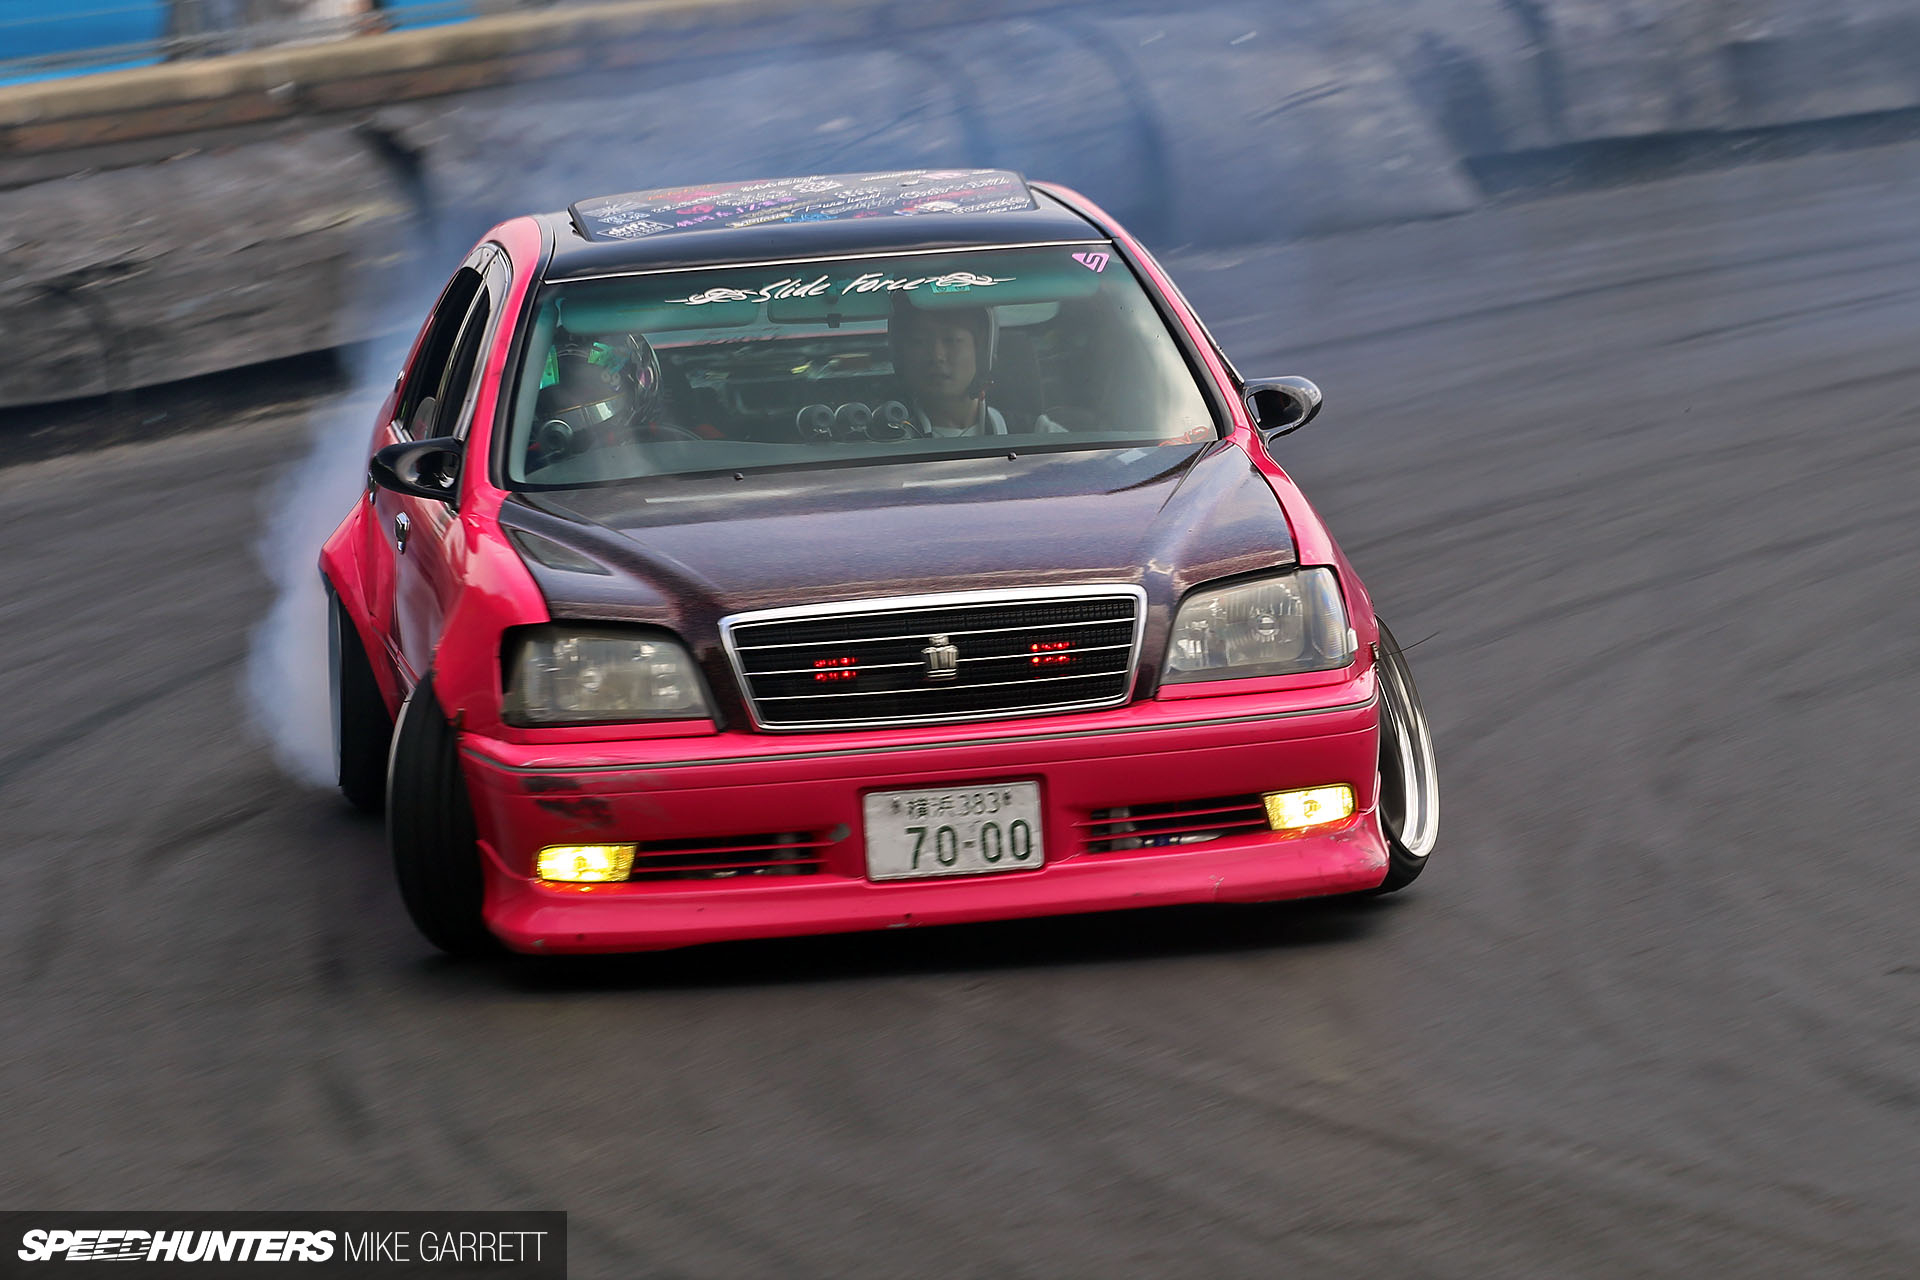 Think Pink Drifting A Japanese Cop Car Speedhunters